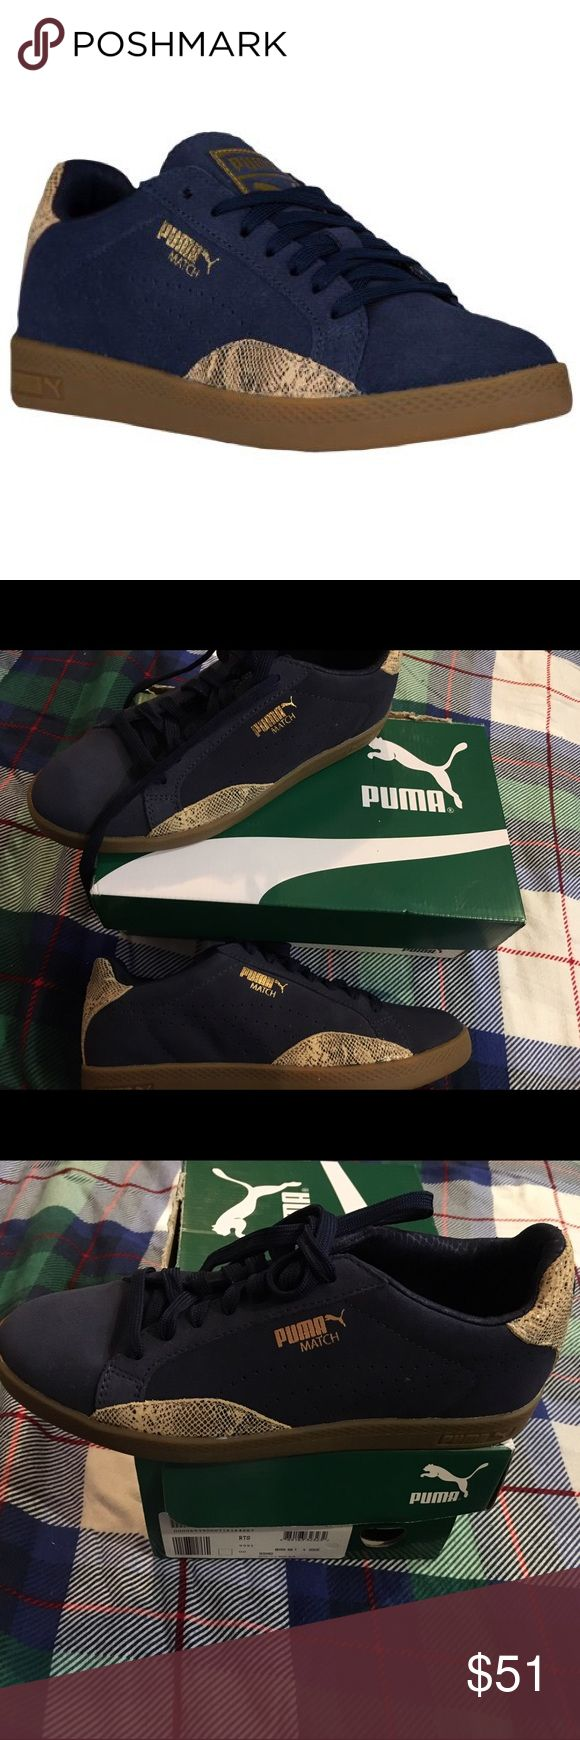 NIB pair of PUMA match-lo New in box, pair of women's puma's Match-lo in amazing color combo Peacoat/gold snake print. This classic style takes its cues from one of PUMA's original 1974 tennis collections. Size US 7 Leather upper. Rubber outsole. Puma Shoes